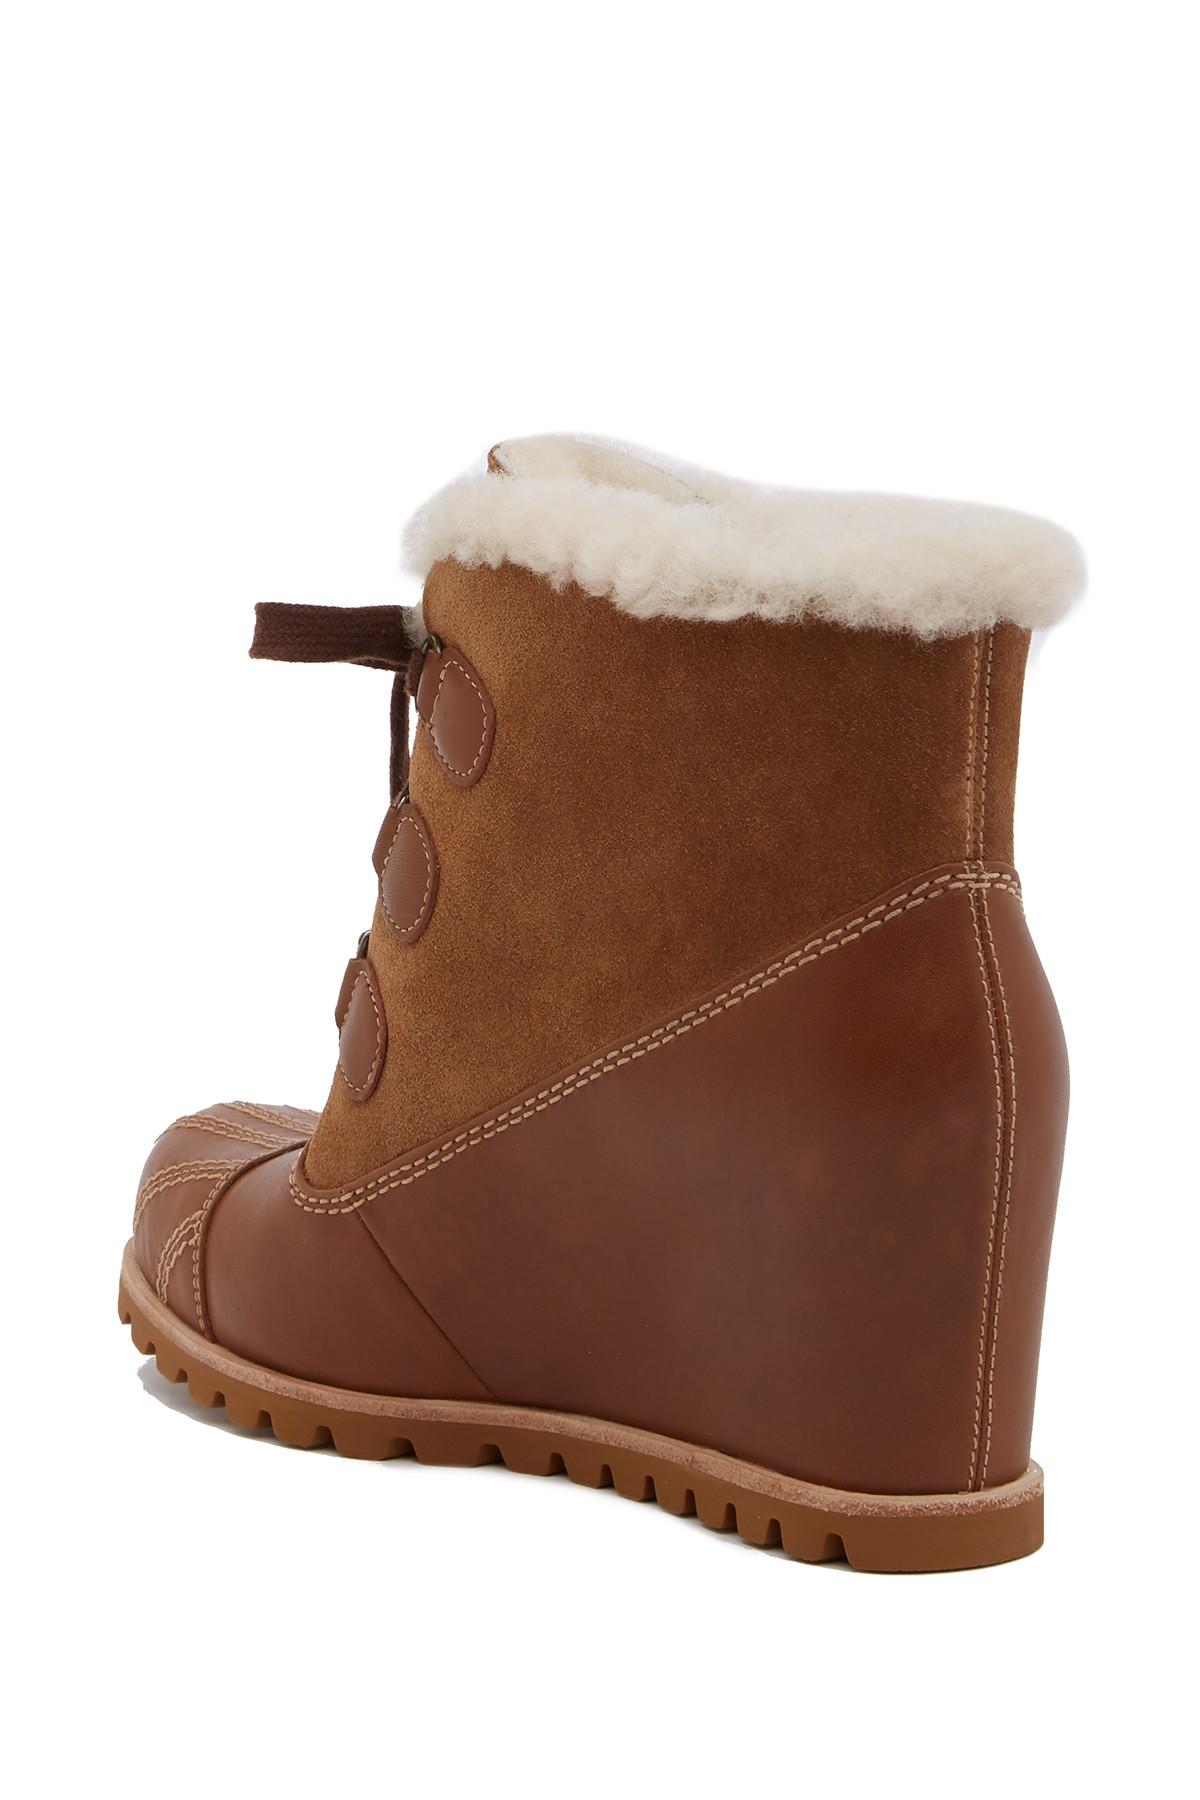 3227e64b44f Lyst - UGG Alasdair Genuine Shearling Lined Waterproof Wedge Bootie ...